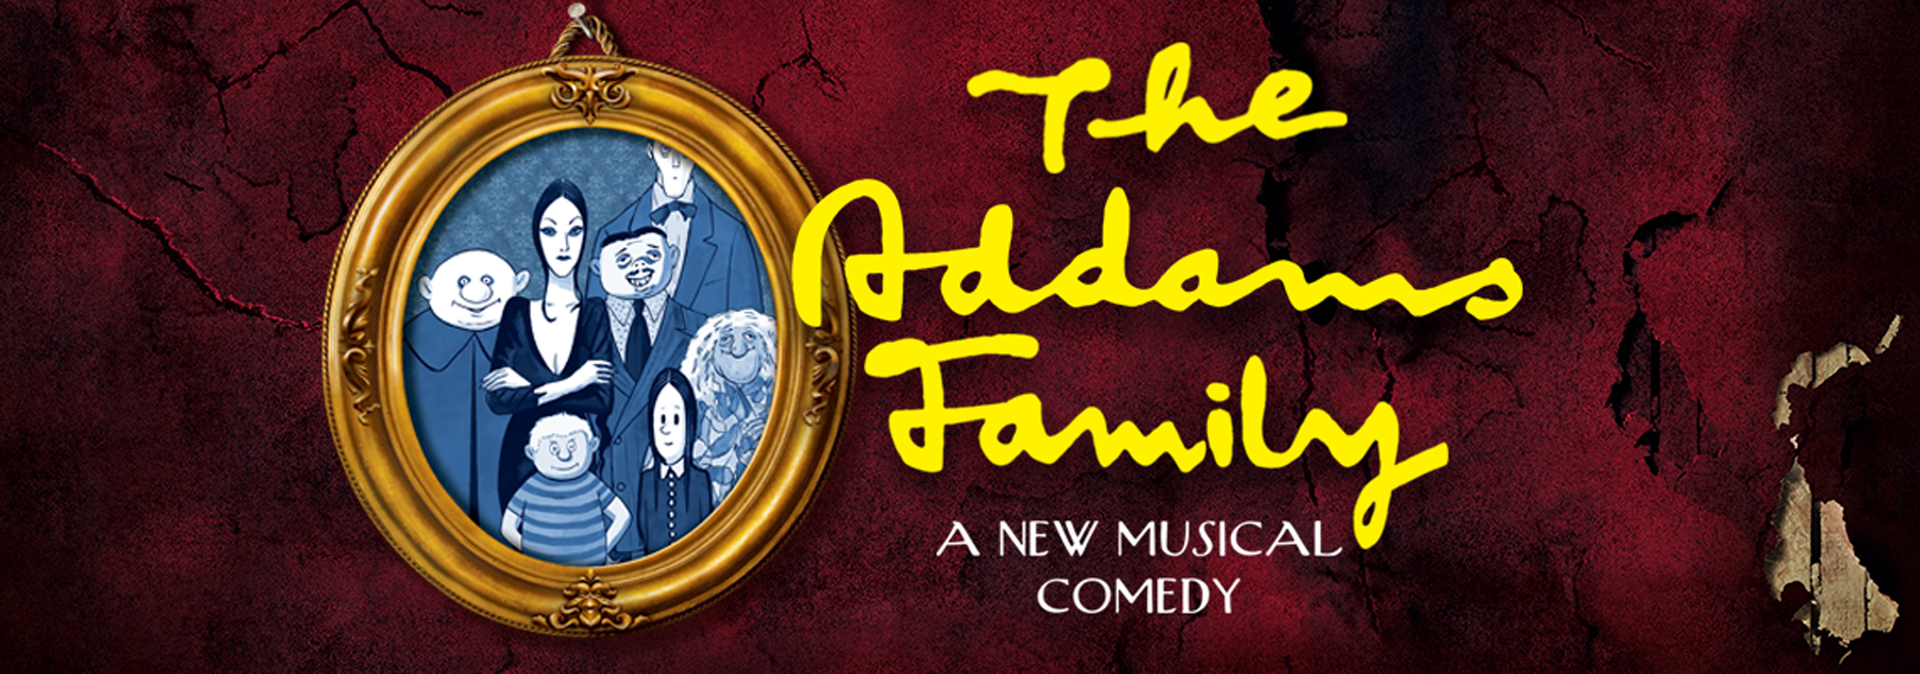 """The Westlake Players present """"The Addams Family."""" Performancesare March 29, 30 at 8:00 pm., March 31 at 1:00 pm., April 5 and April 6 at 8:00 pm."""